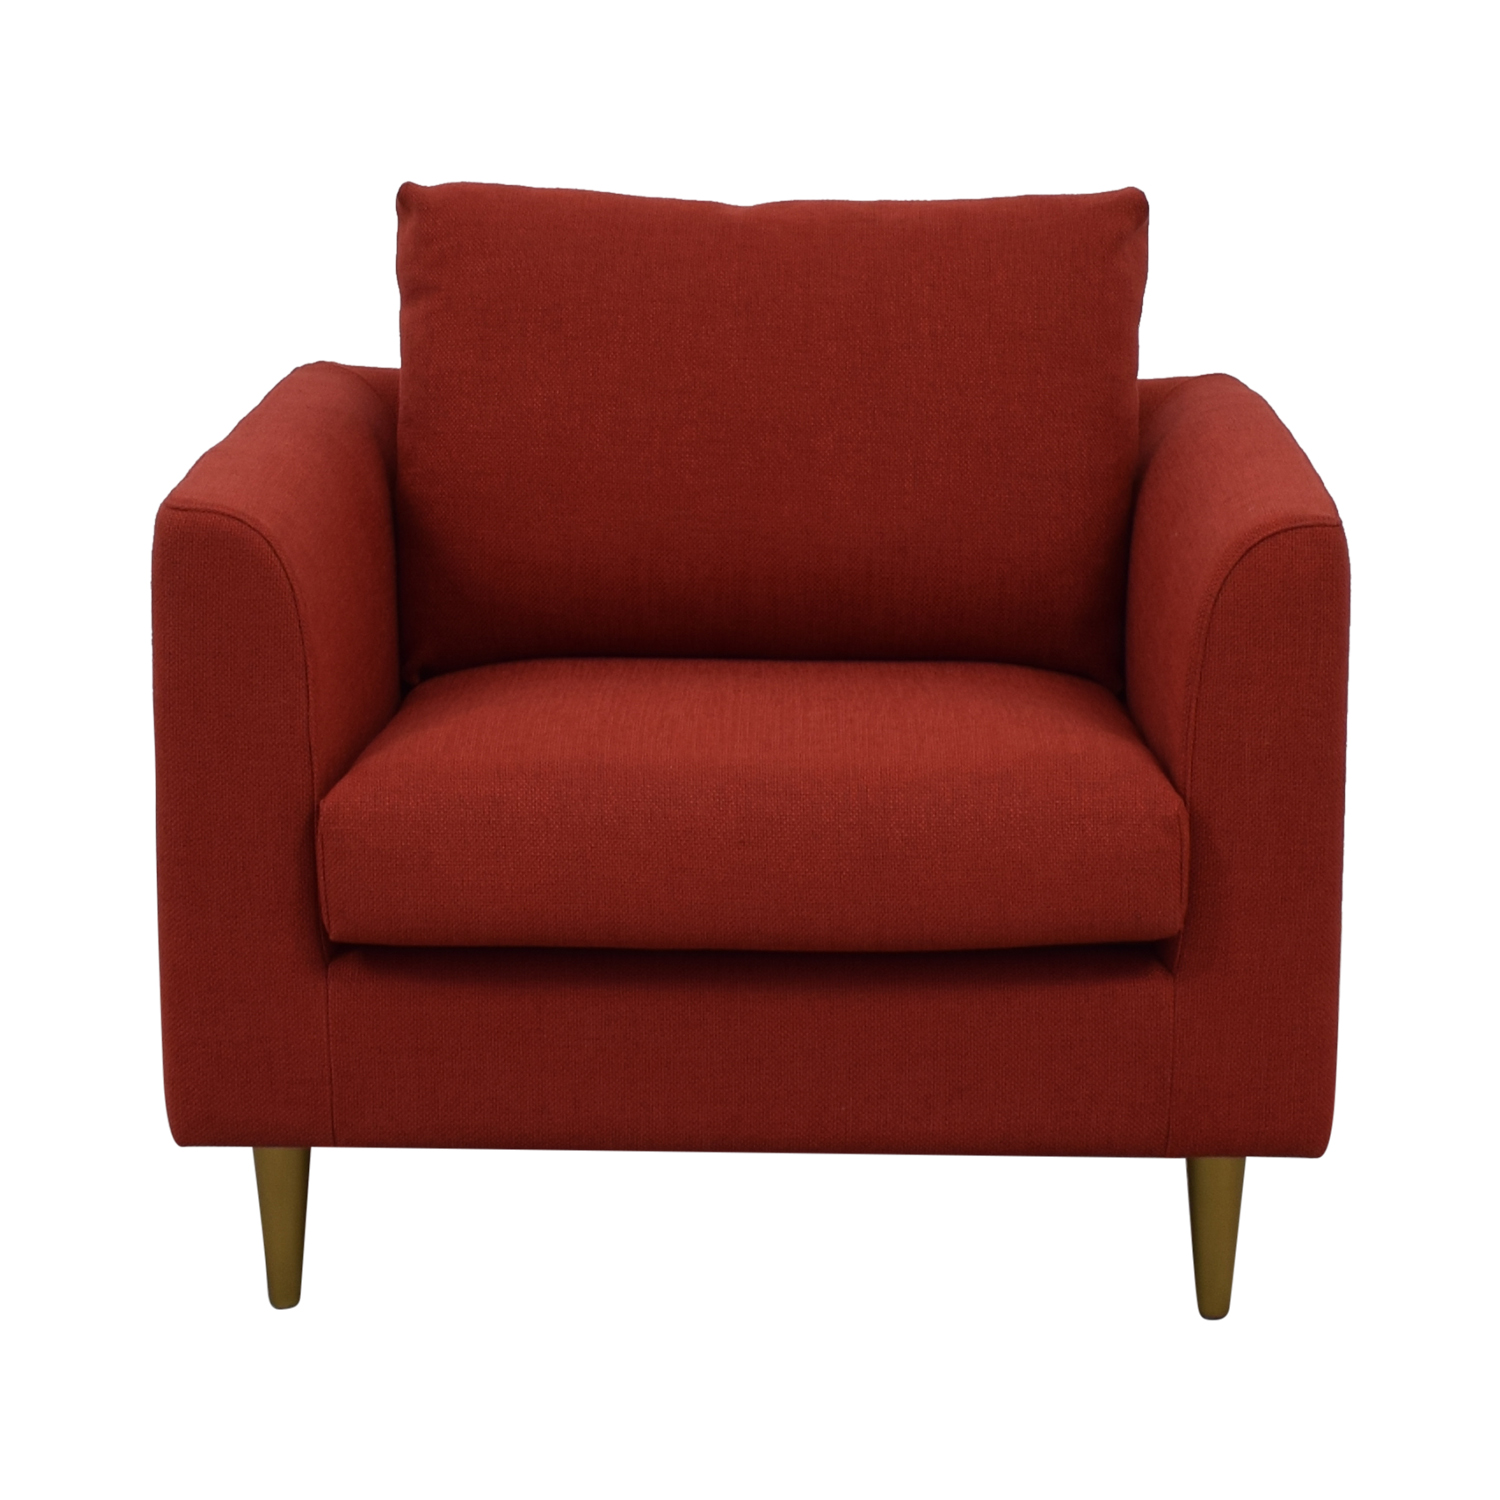 Owens Red Accent Chair second hand